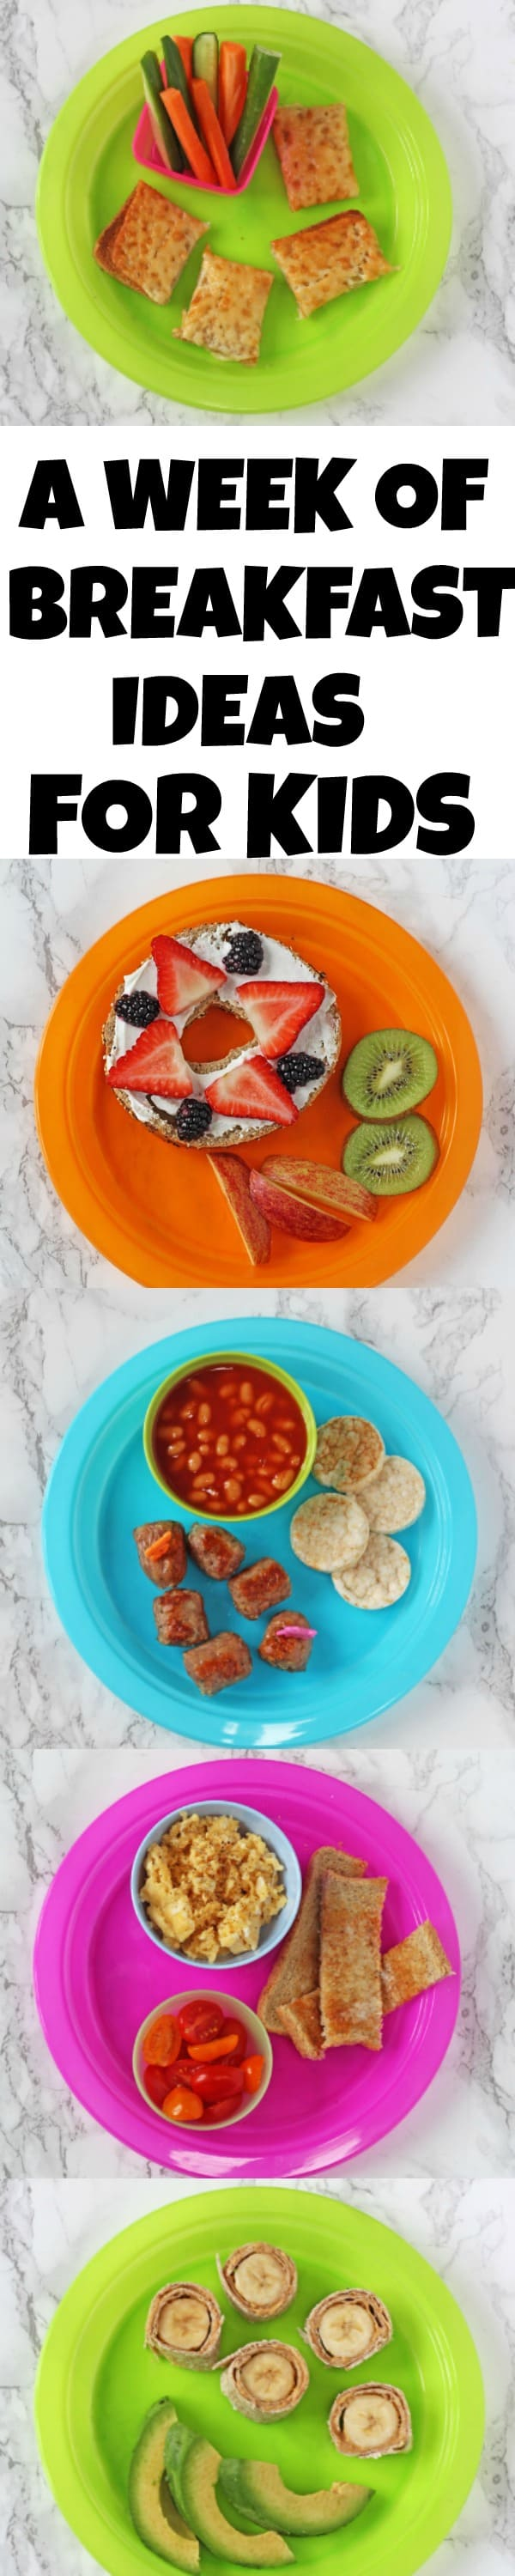 Thinking Of Quick Easy And Healthy Breakfast Recipes For Kids That Arent Toast